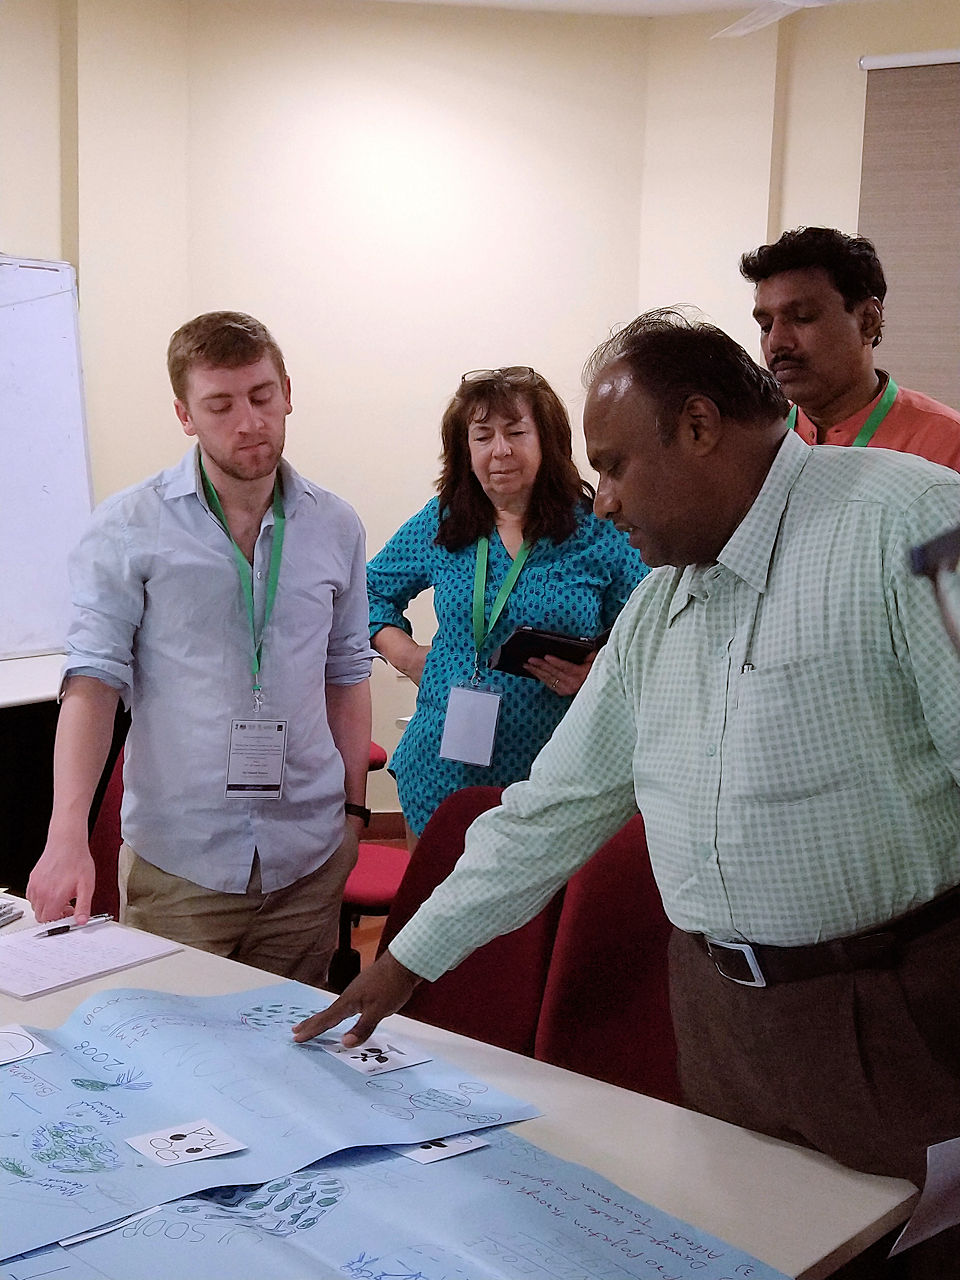 Vincent in discussions with Indian colleagues